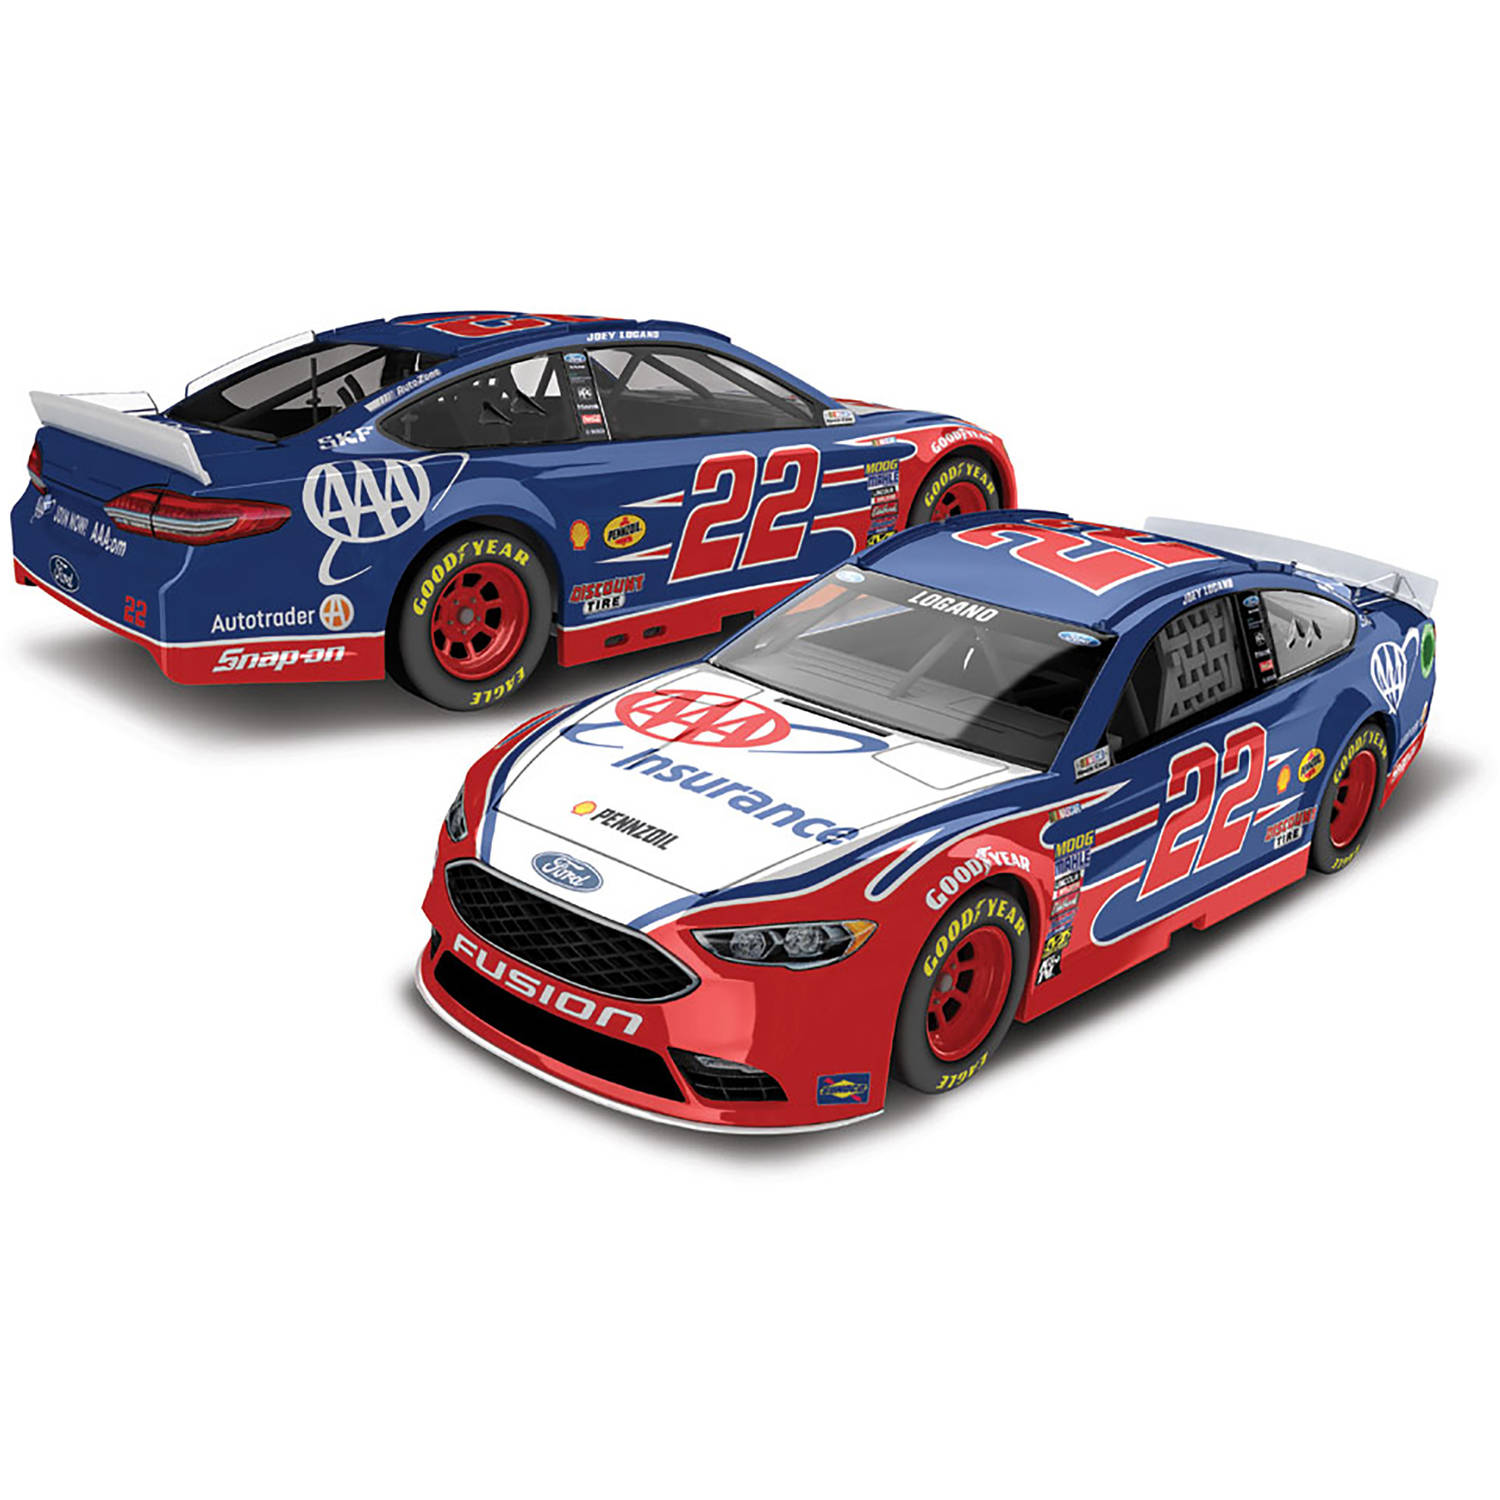 Lionel Racing Joey Logano #22 AAA Insurance 2017 Ford Fusion 1:64th Scale Hard-Top Official Diecast of the NASCAR Cup Series